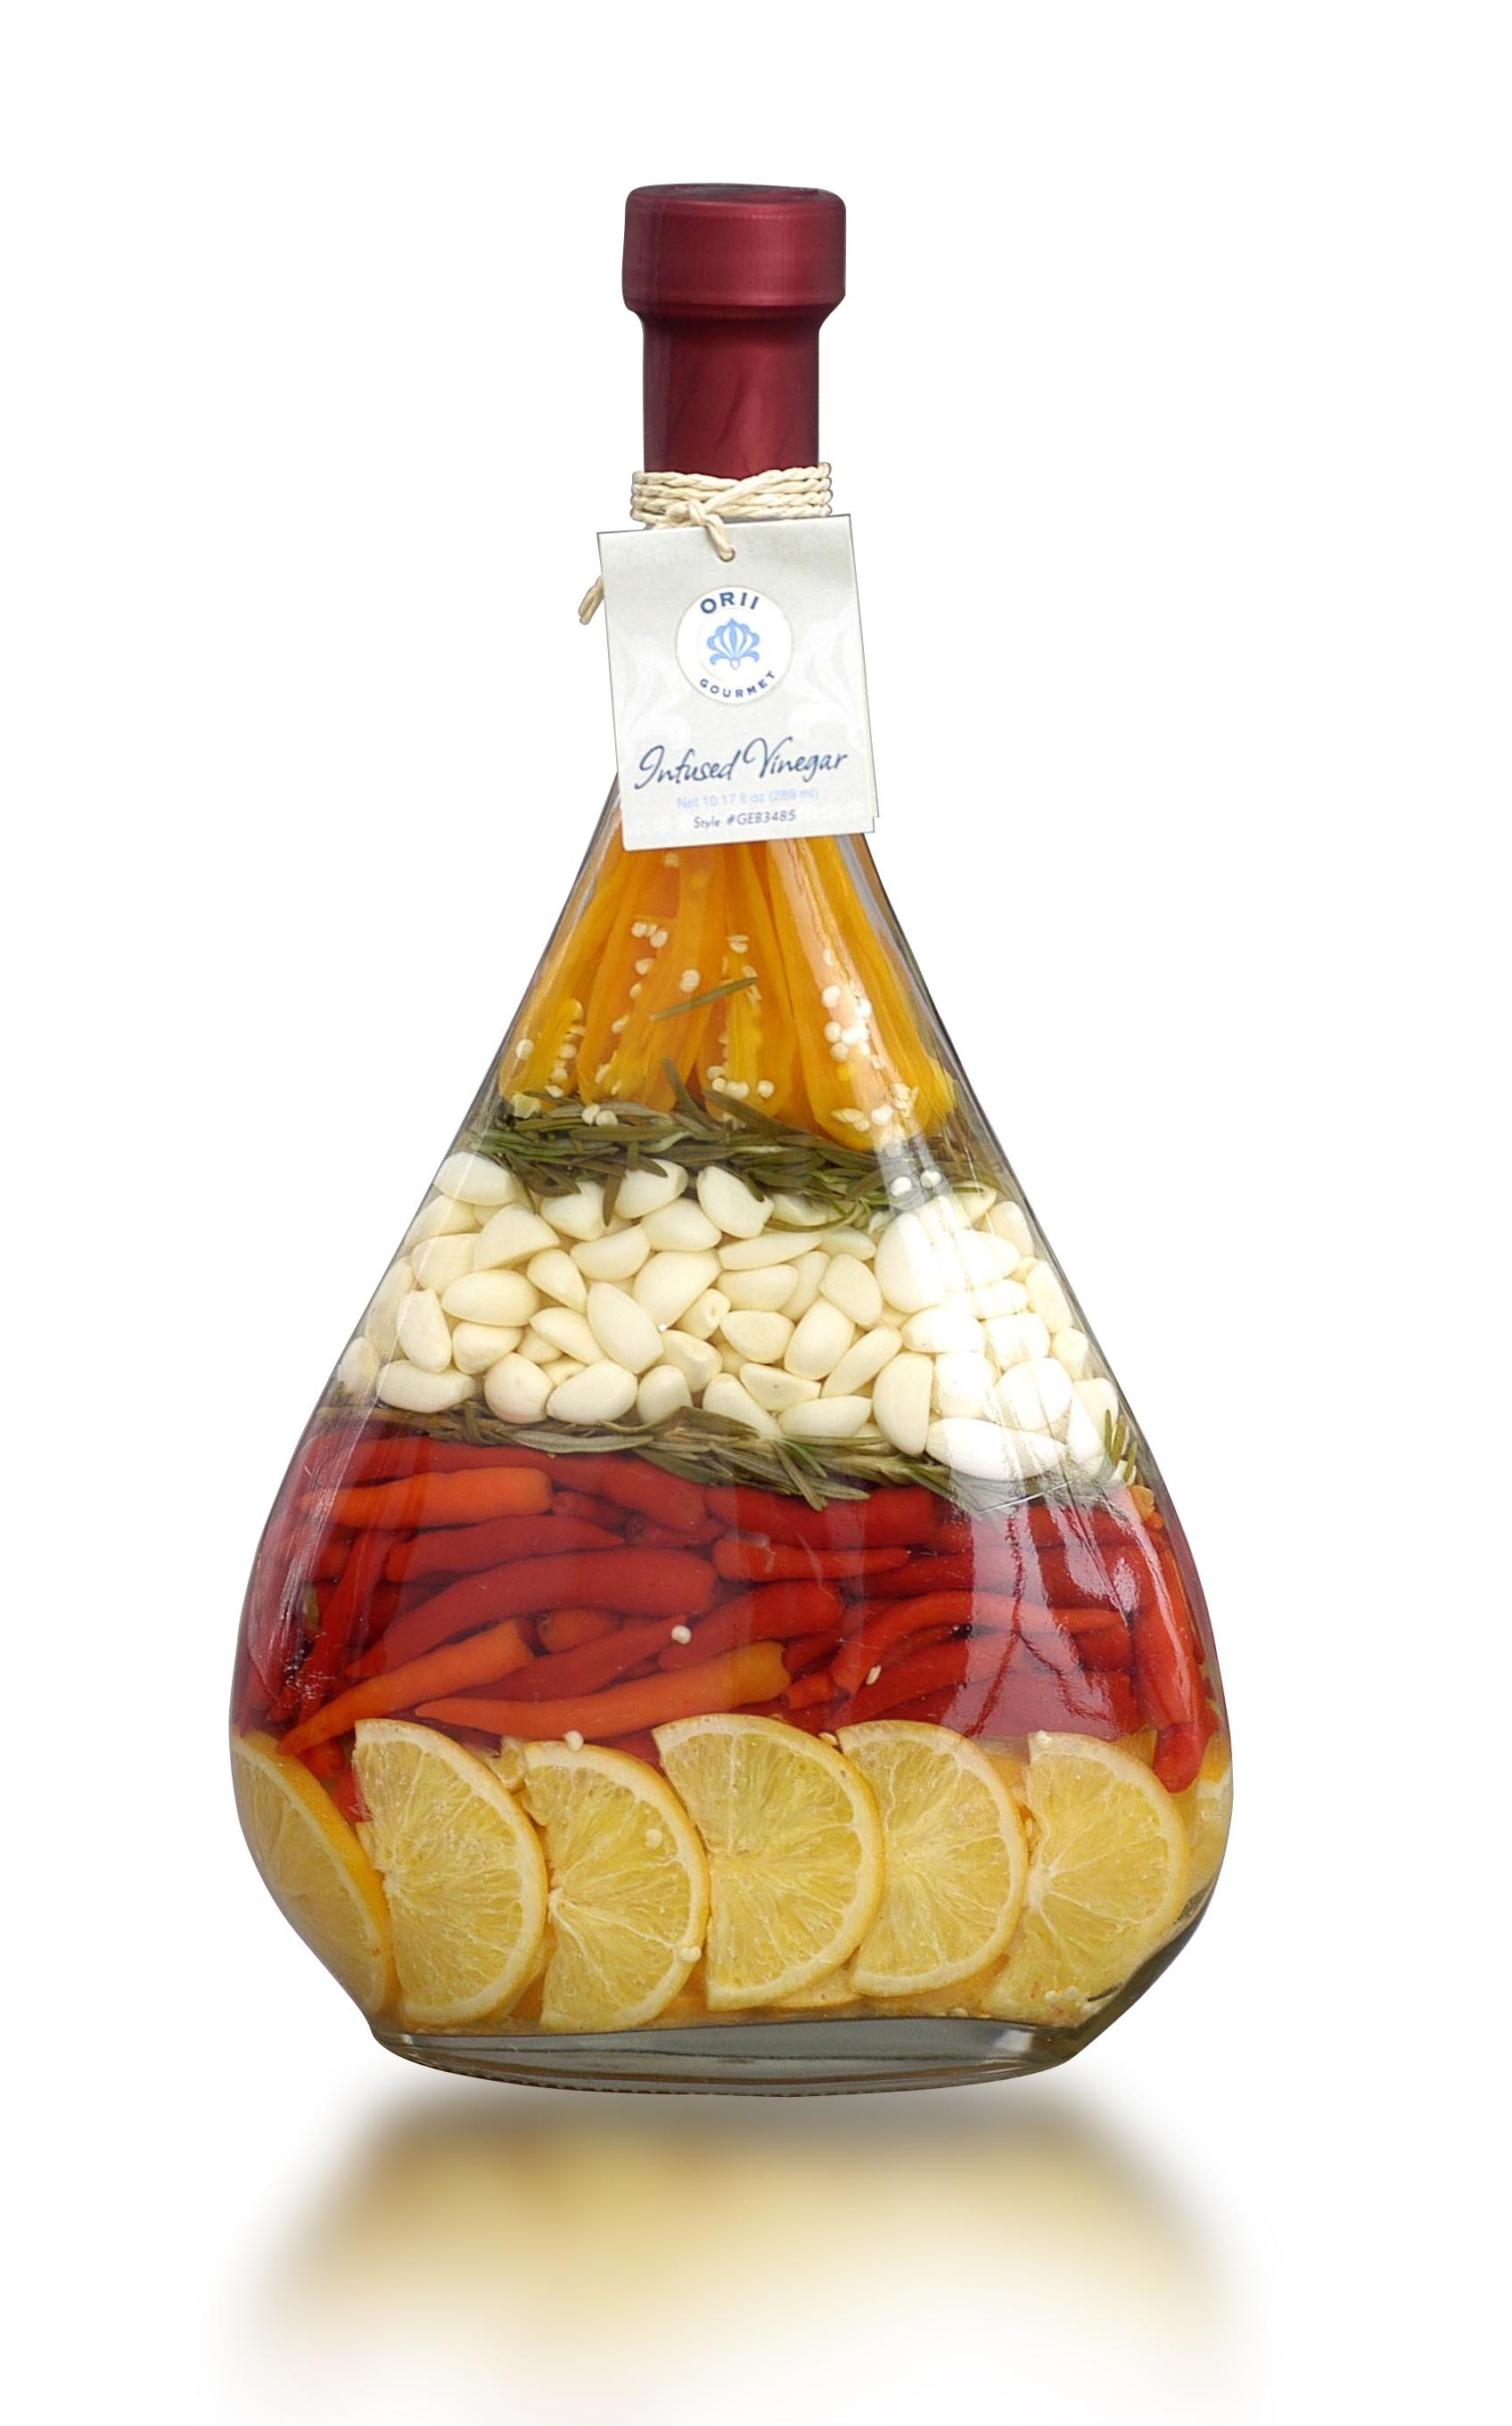 Decorative Vinegar Bottle GEB60 LUTE Decorated Vinegar Bottle Decorative Vinegar Bottles 1